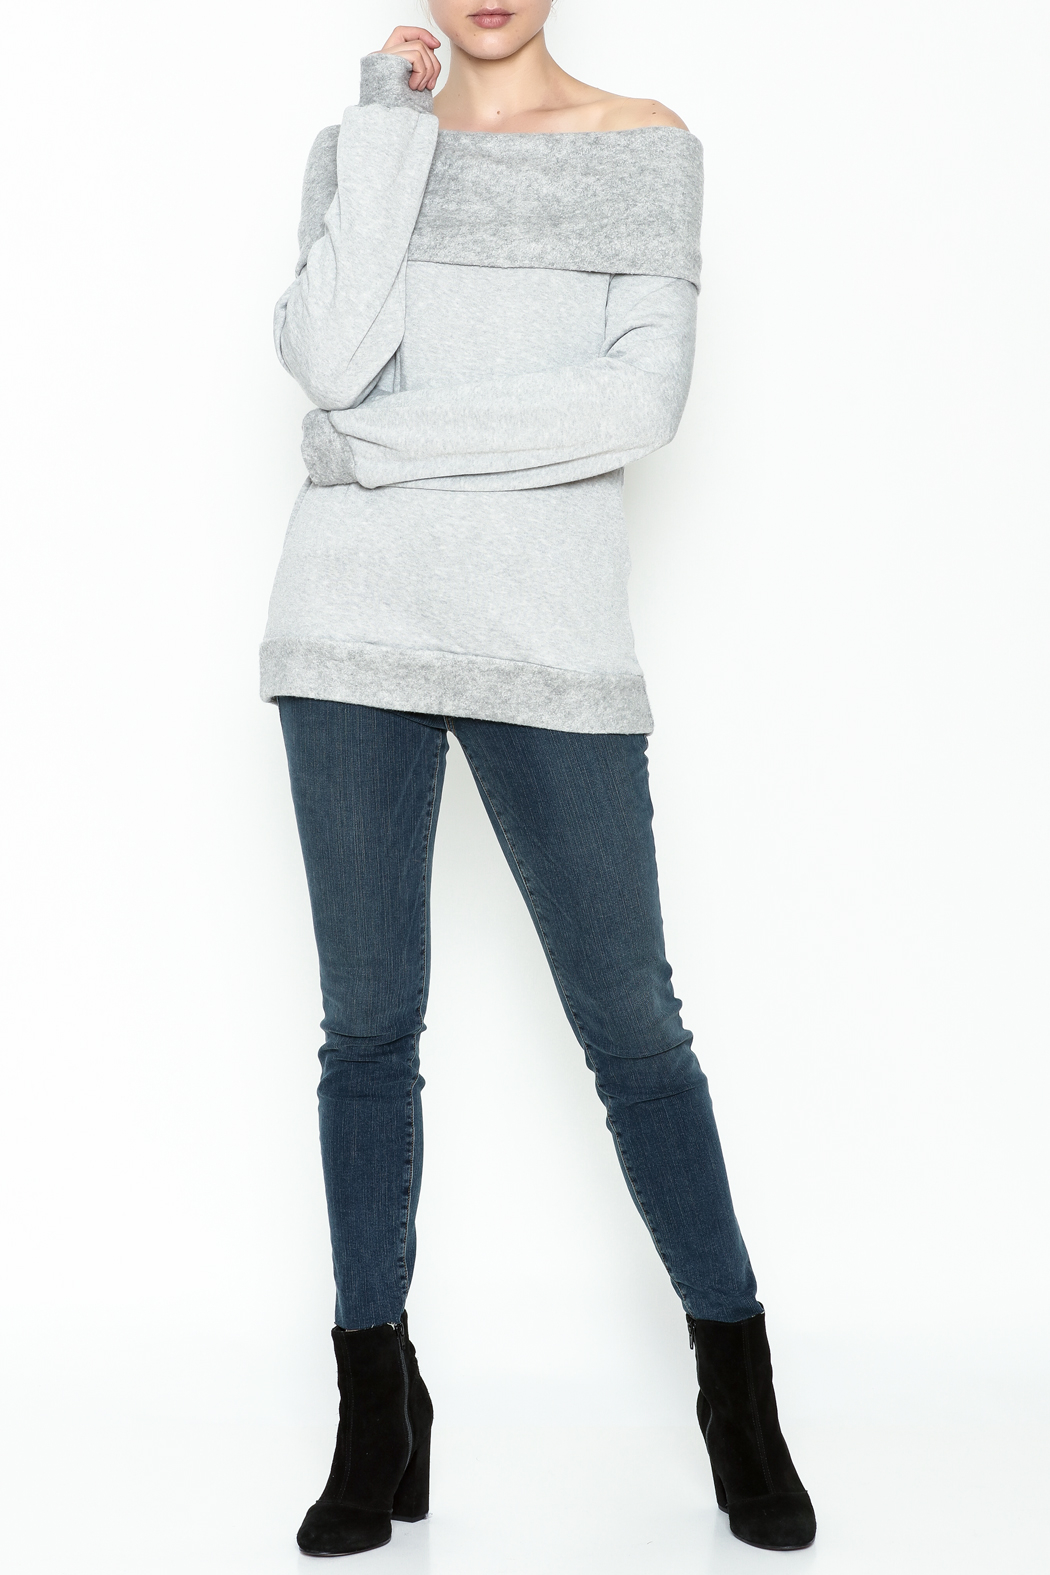 Elan Convertible Cowl Sweater - Side Cropped Image